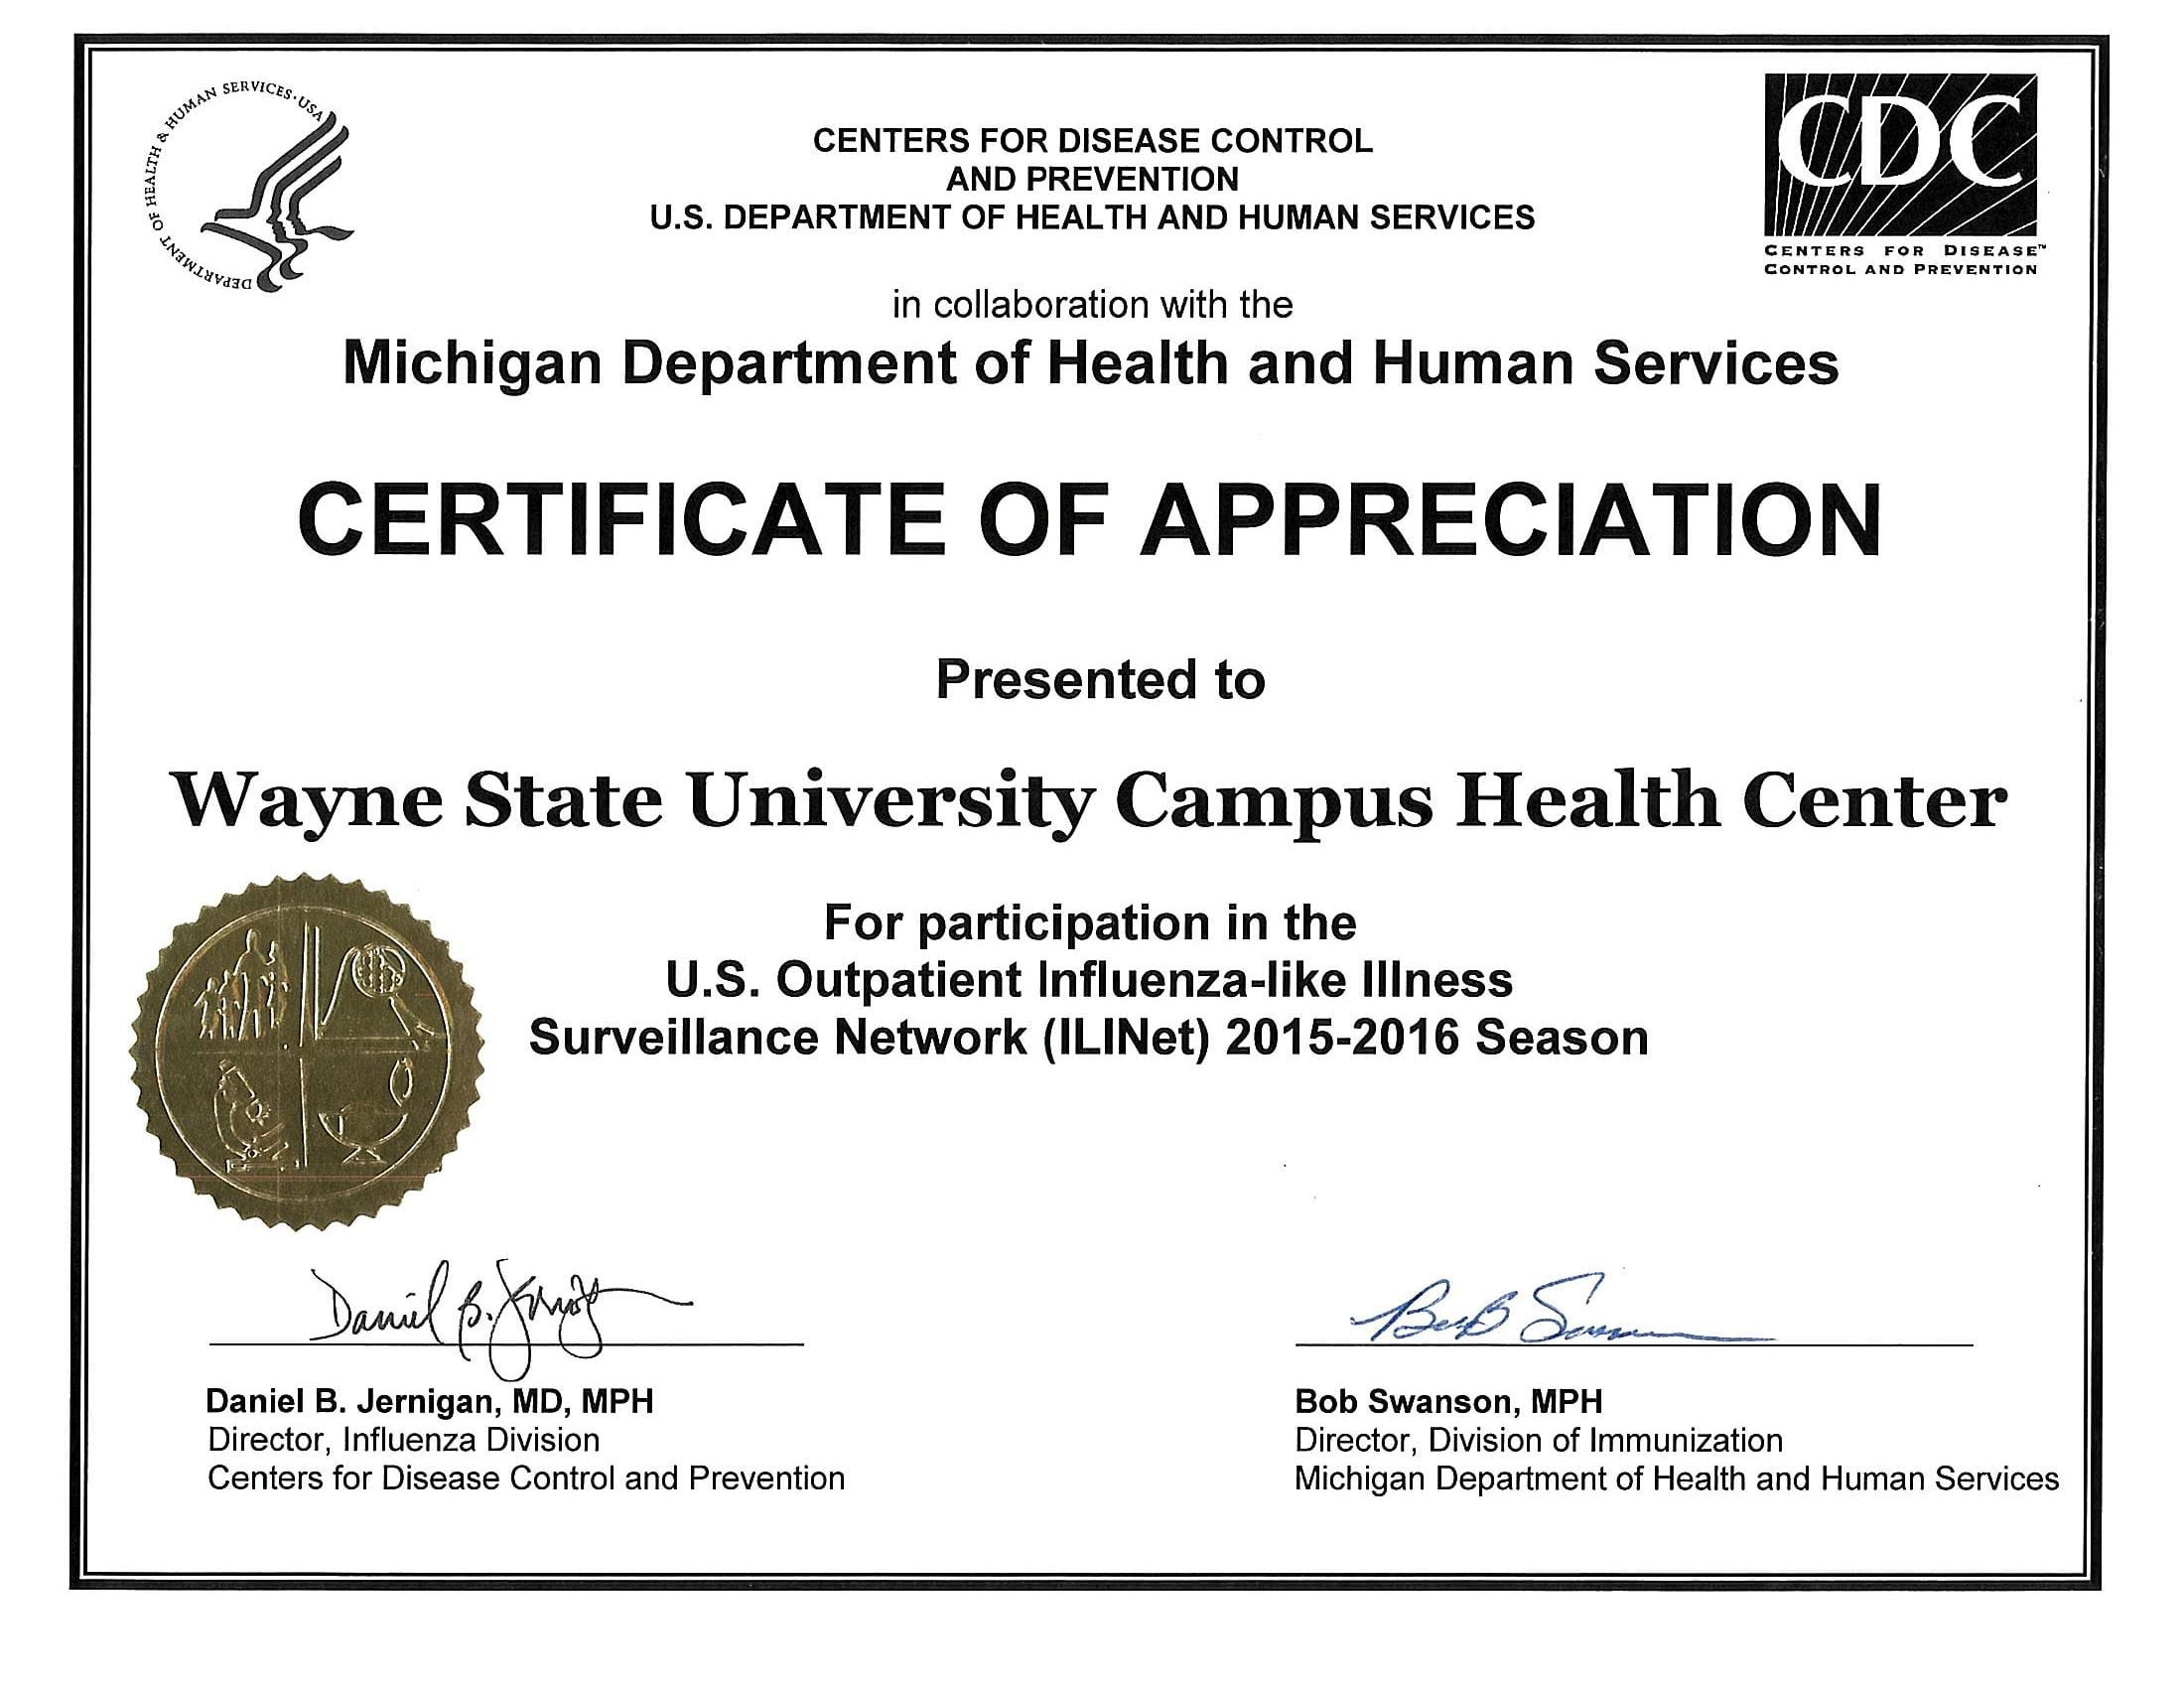 Awardsmemberships campus health center the michigan council of nurse practitioners micnp was a product of two nurse practitioner np groups from the metro detroit area coming together in xflitez Image collections